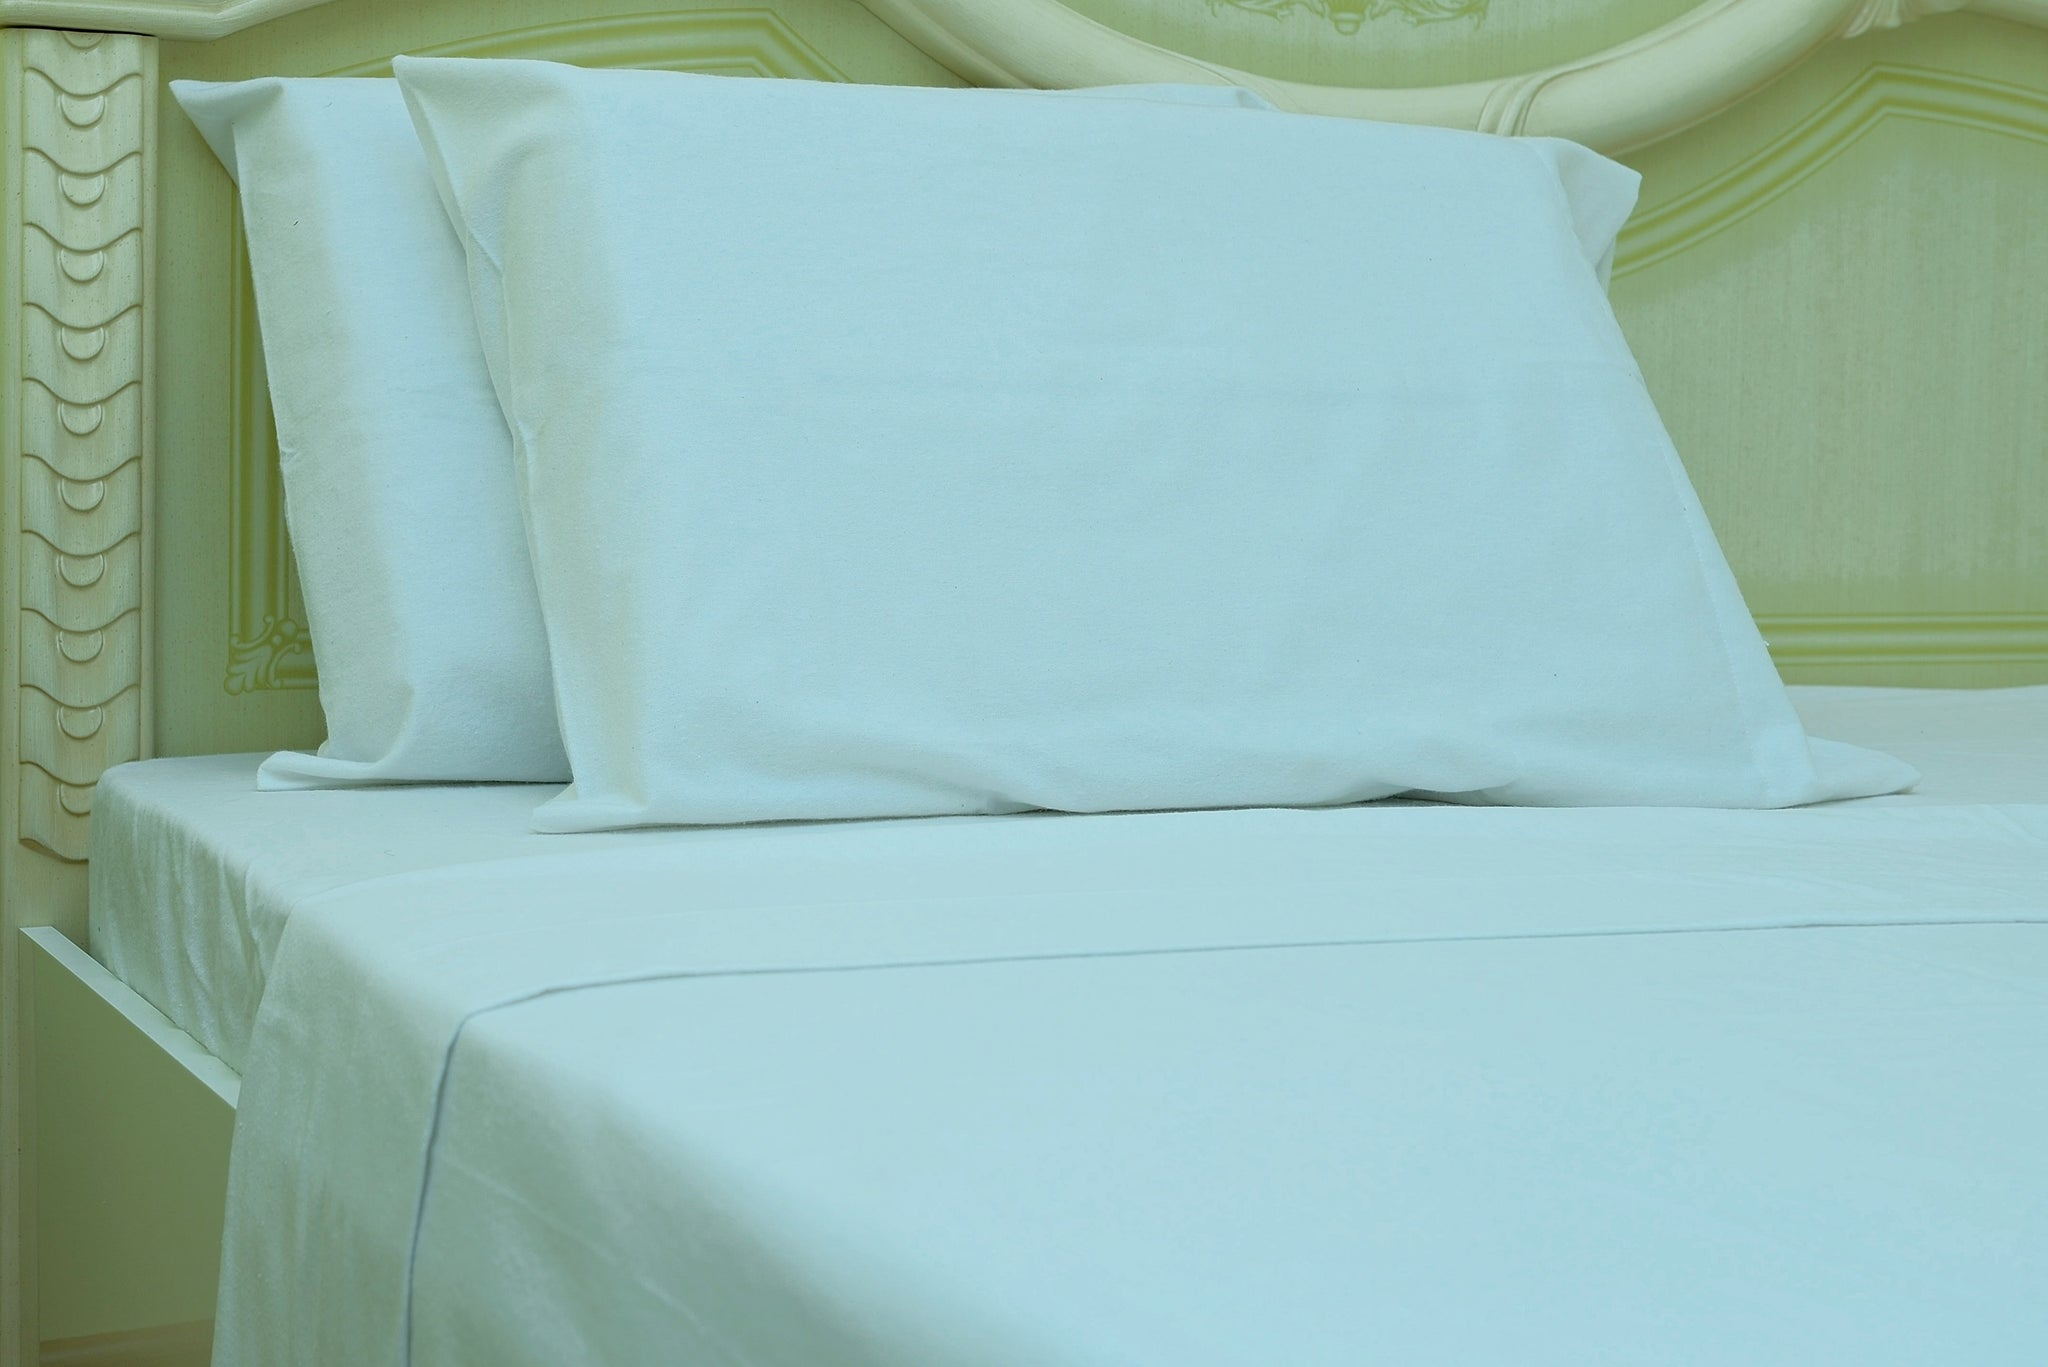 Flannel Flat Sheet - %100 Cotton, Brushed, Top Sheet - White - Queen Size